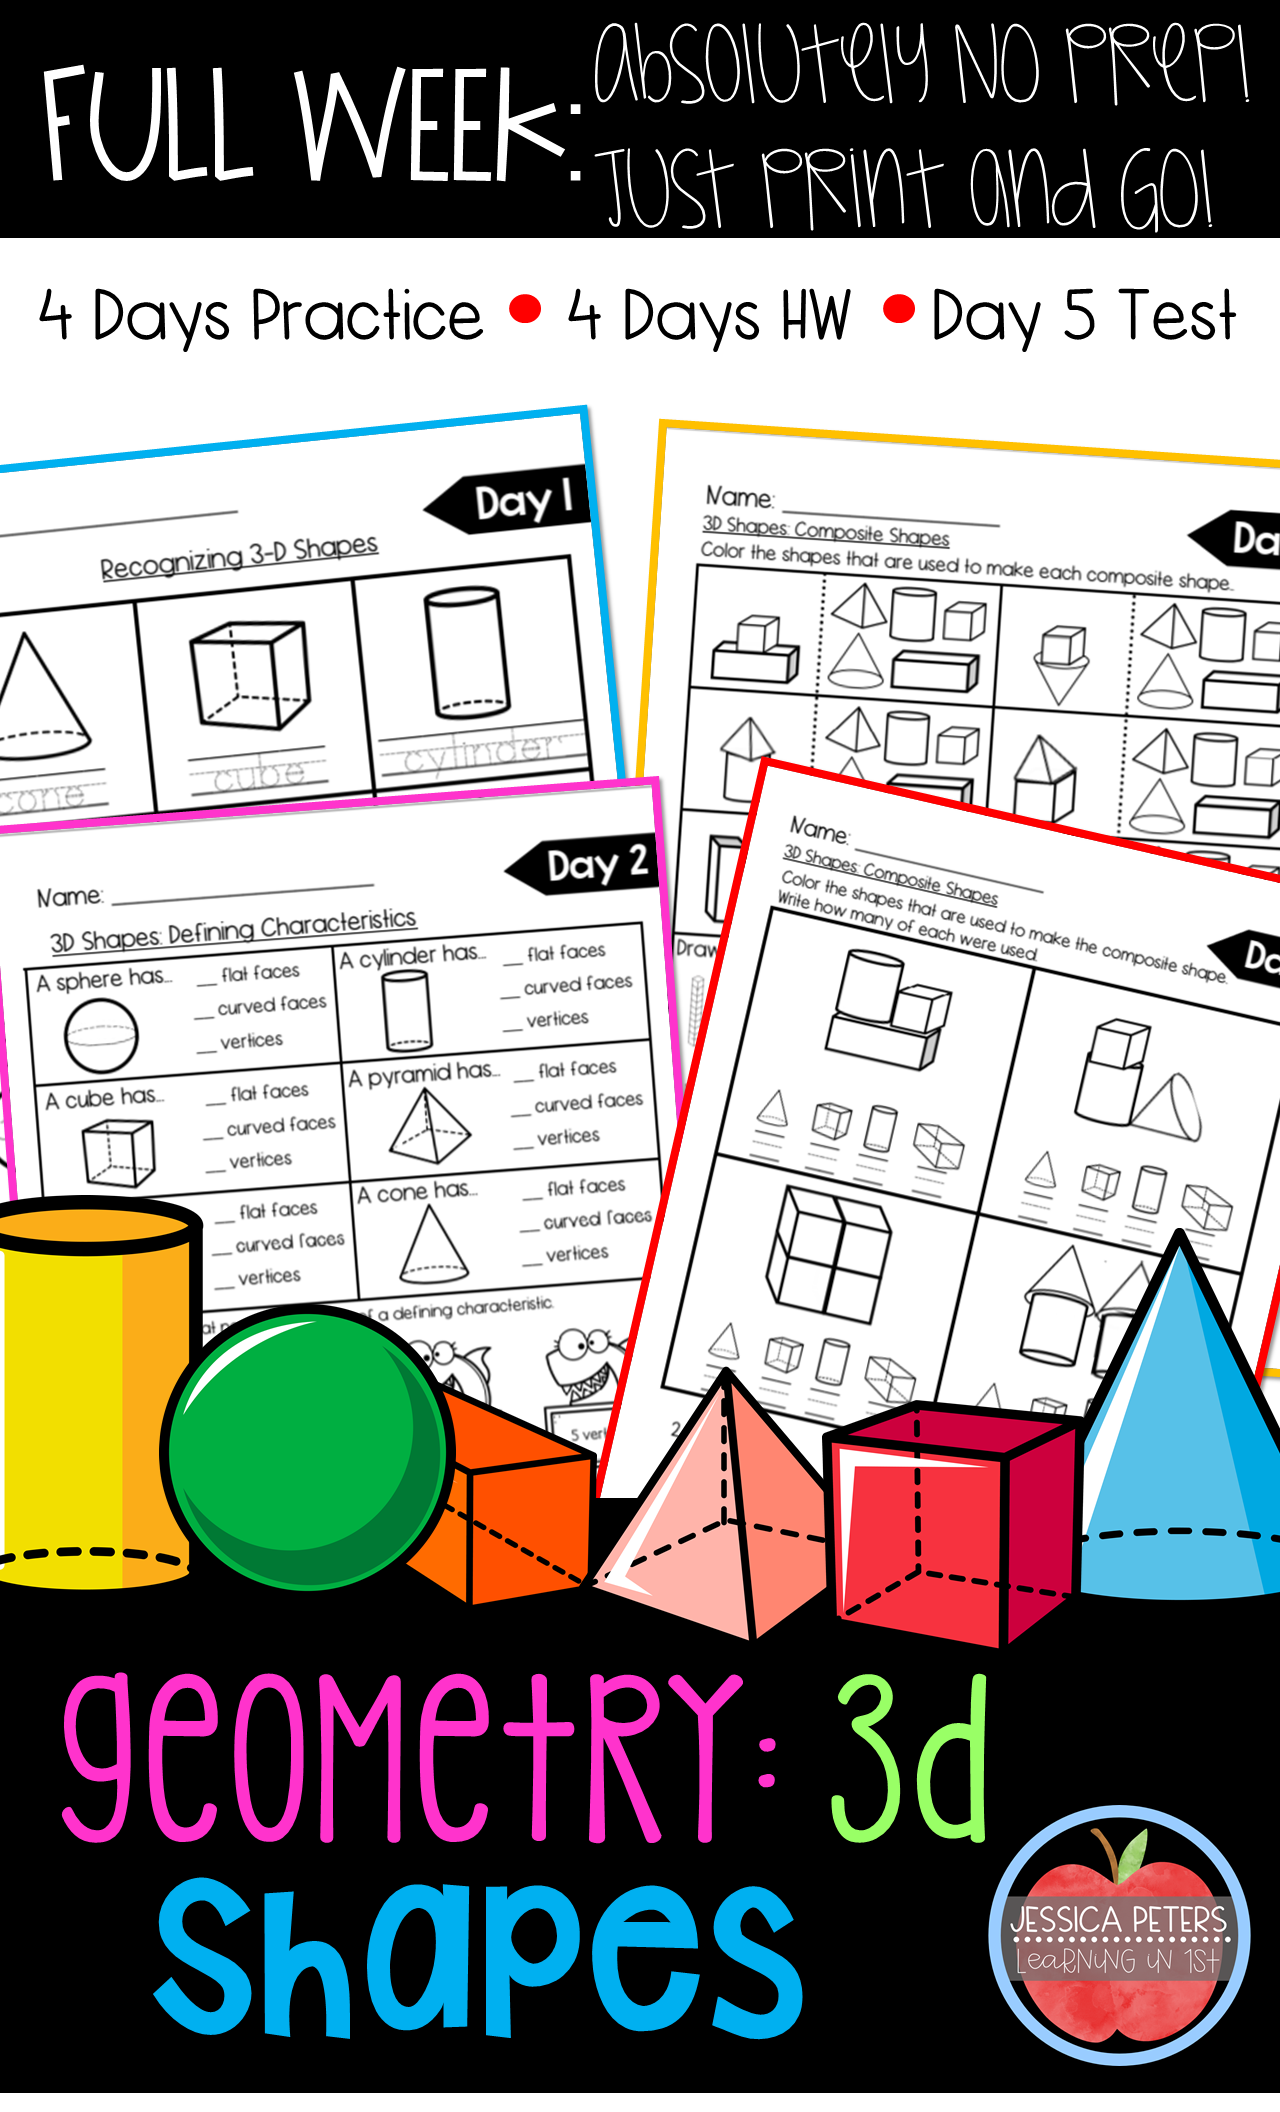 hight resolution of 2 And 3 Dimensional Shapes Worksheet For First Grade   Printable Worksheets  and Activities for Teachers